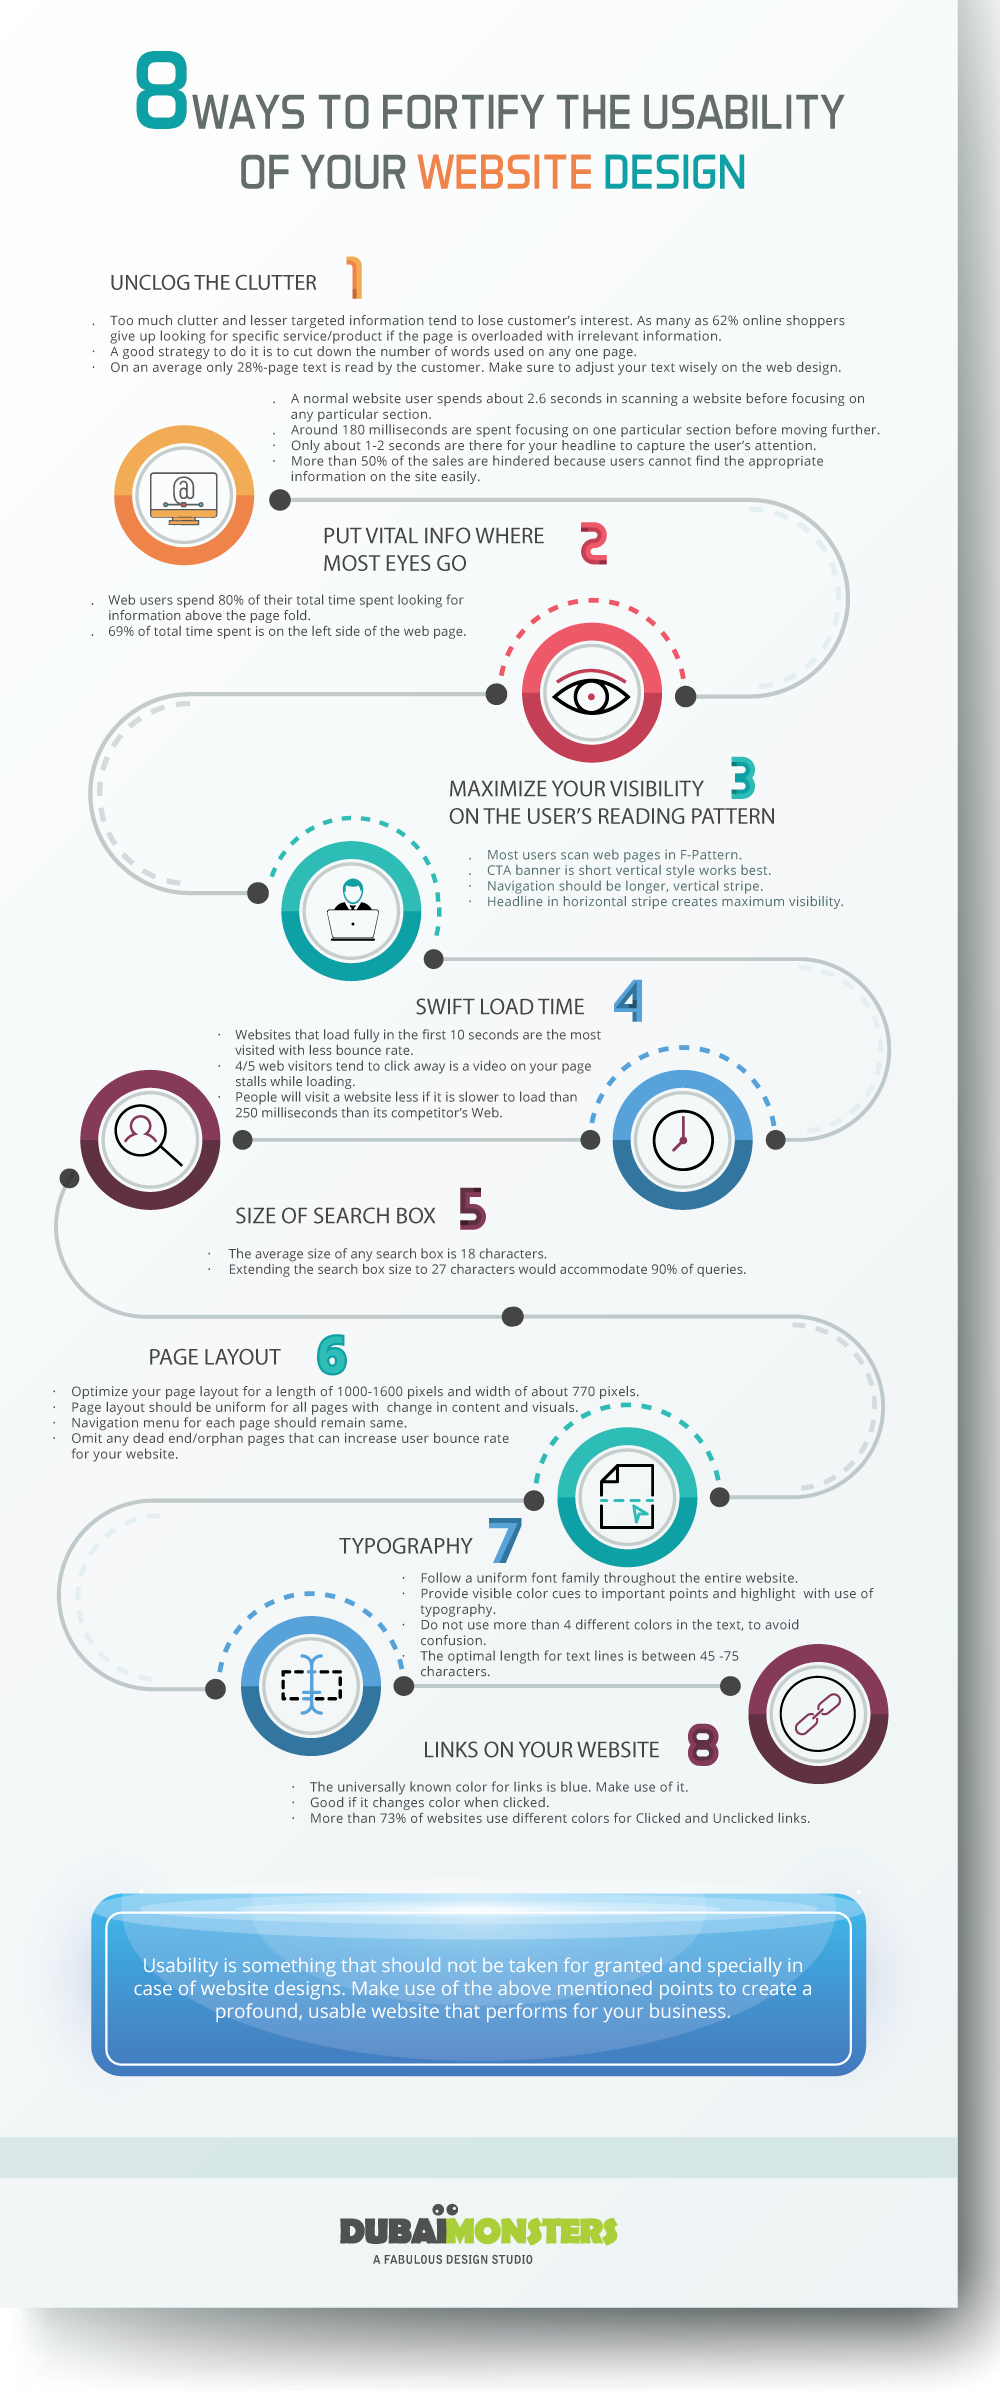 8 Ways to Fortify the Usability of your Website Design #Infographic